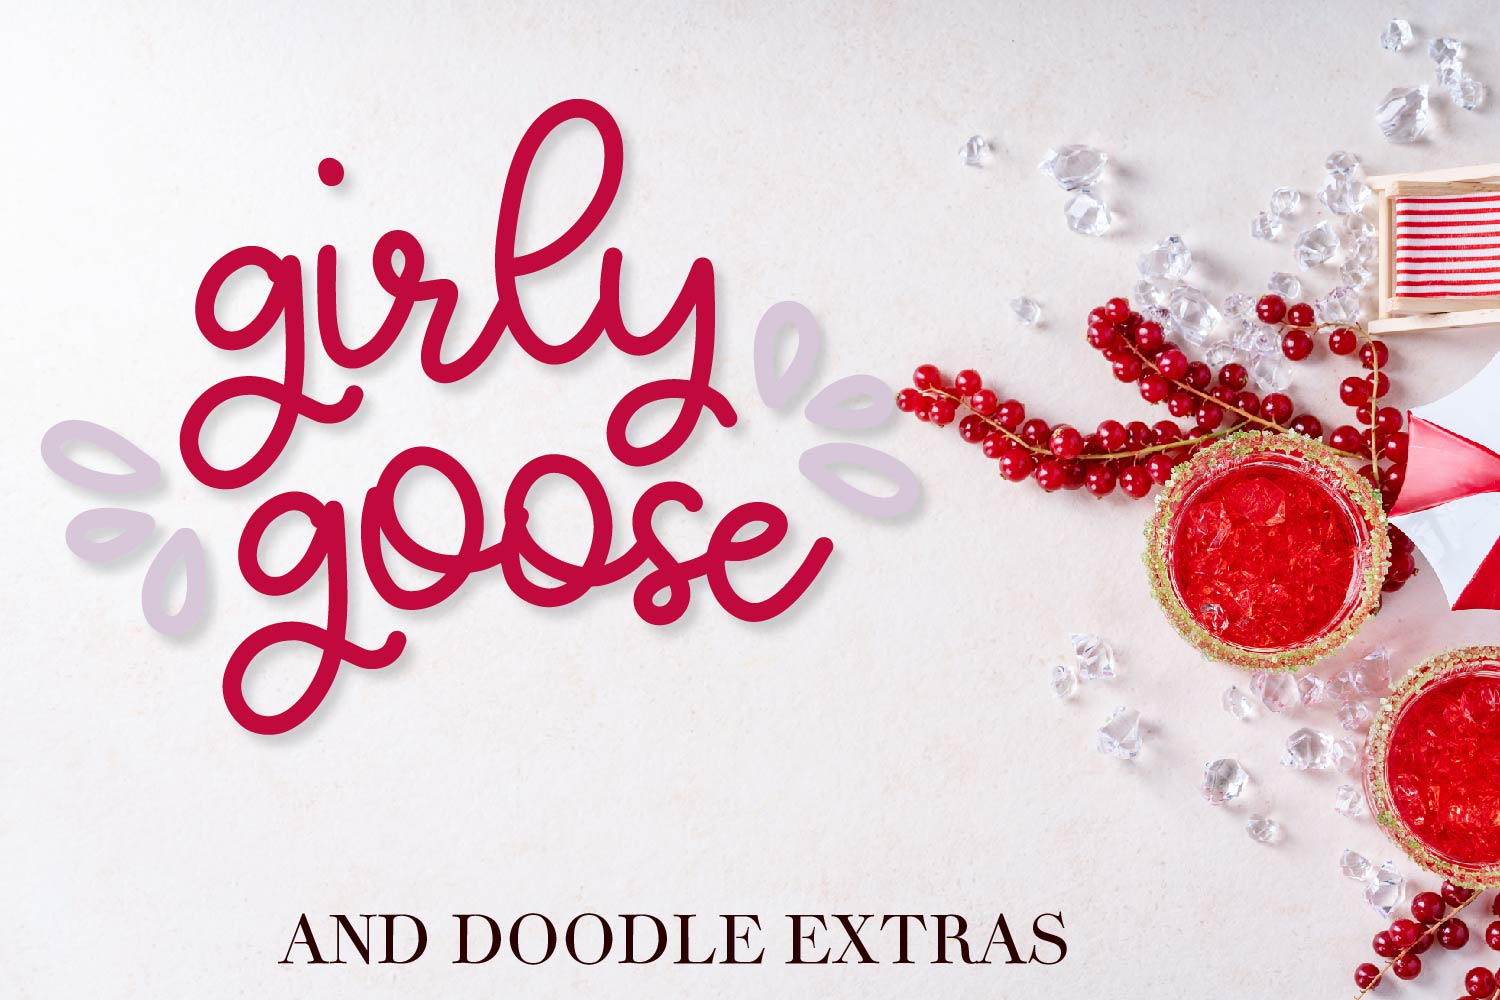 Girly Goose - A Fun Script Font with Doodle Extras example image 1